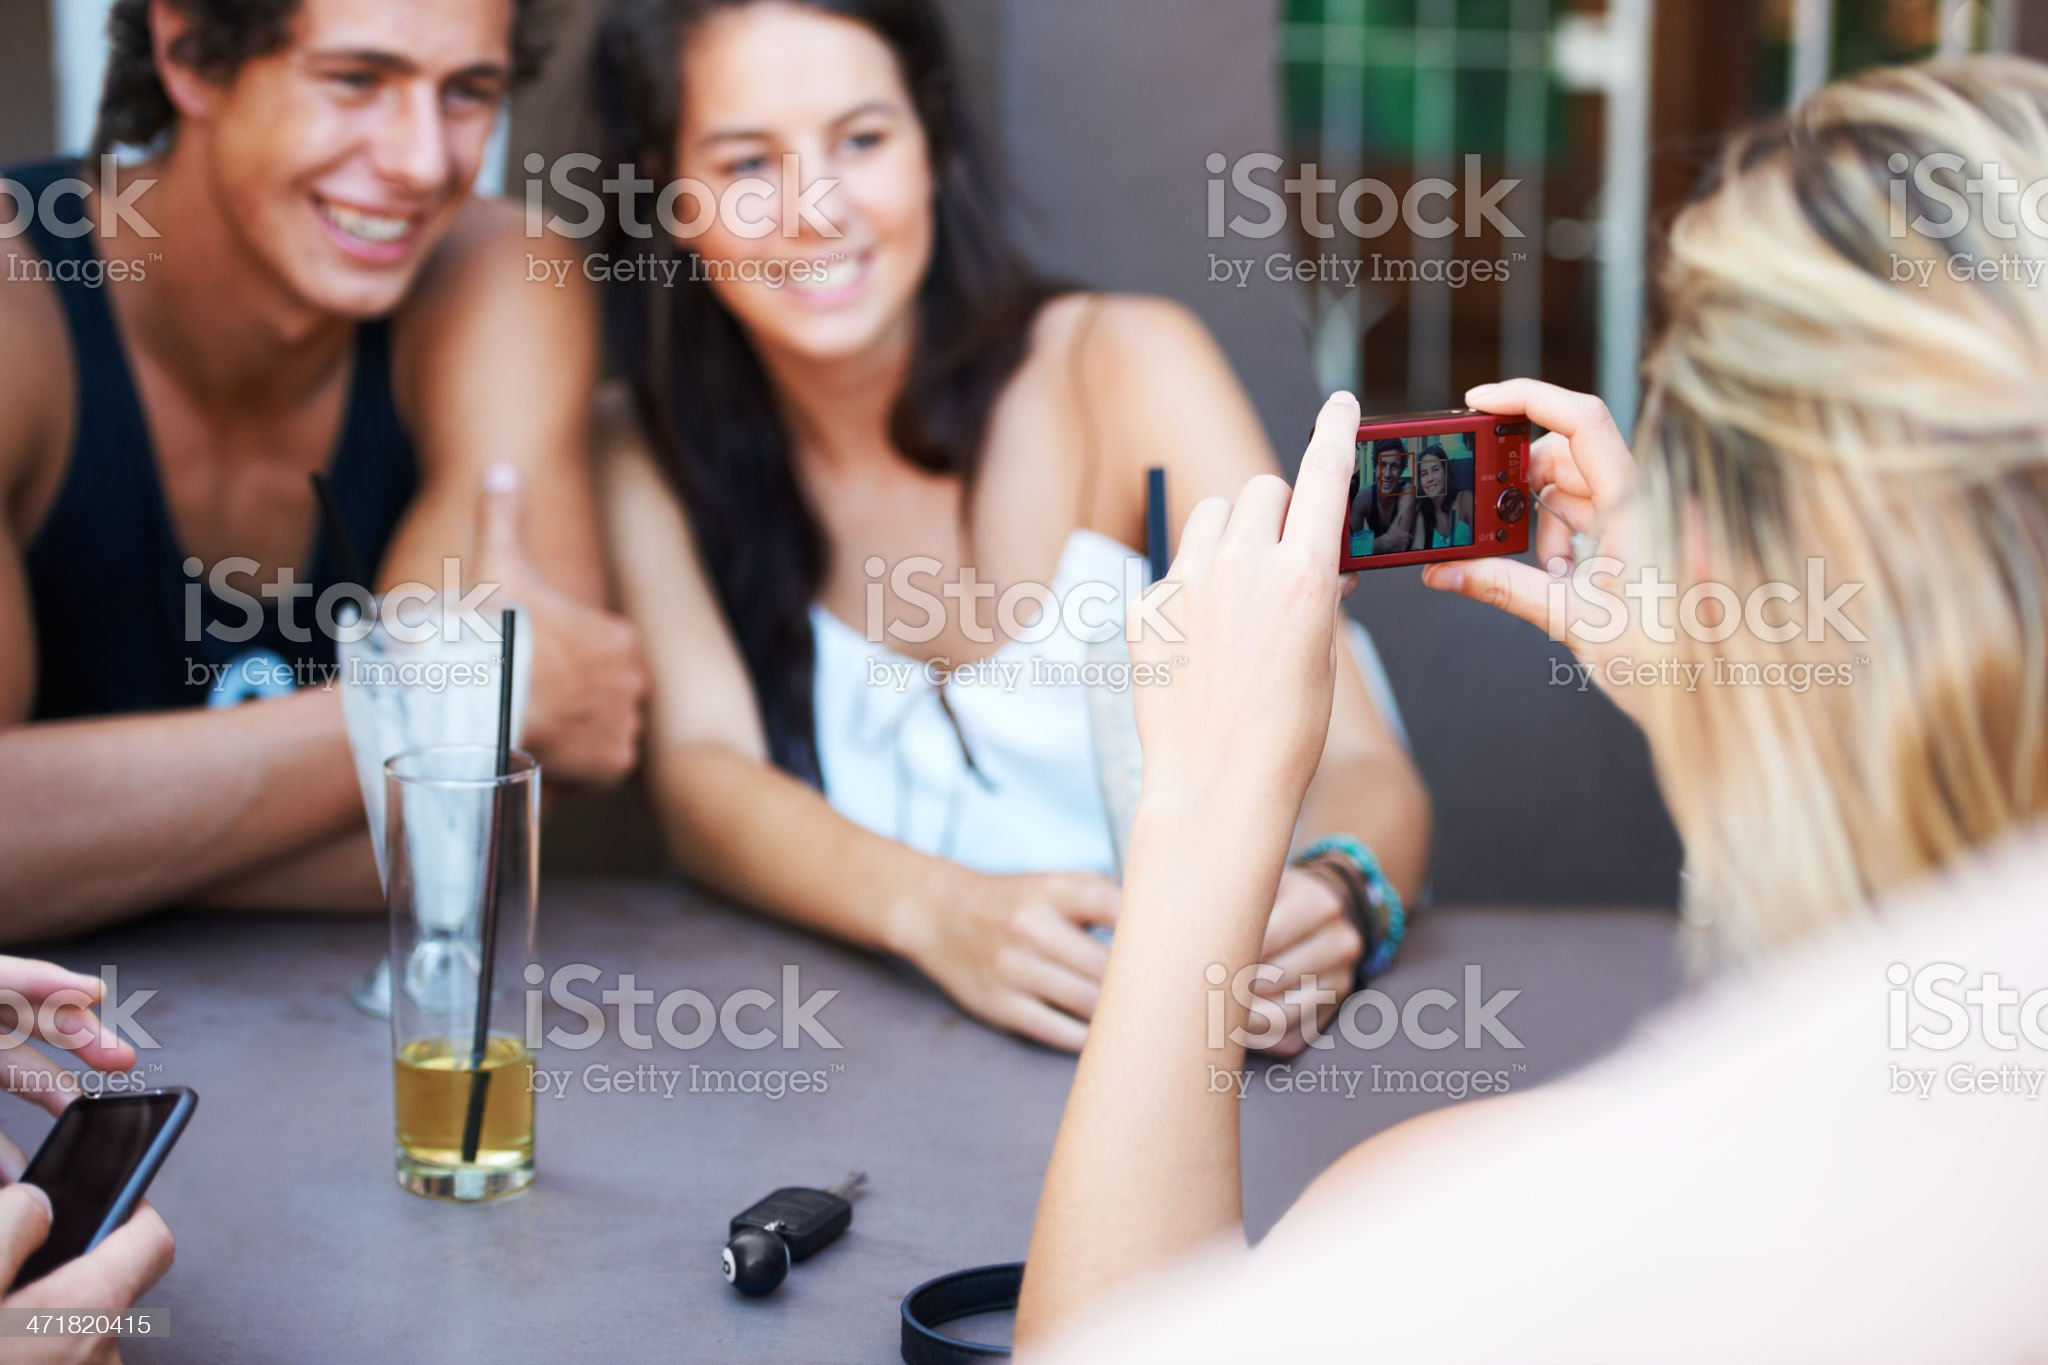 Capturing their happiest memories royalty-free stock photo